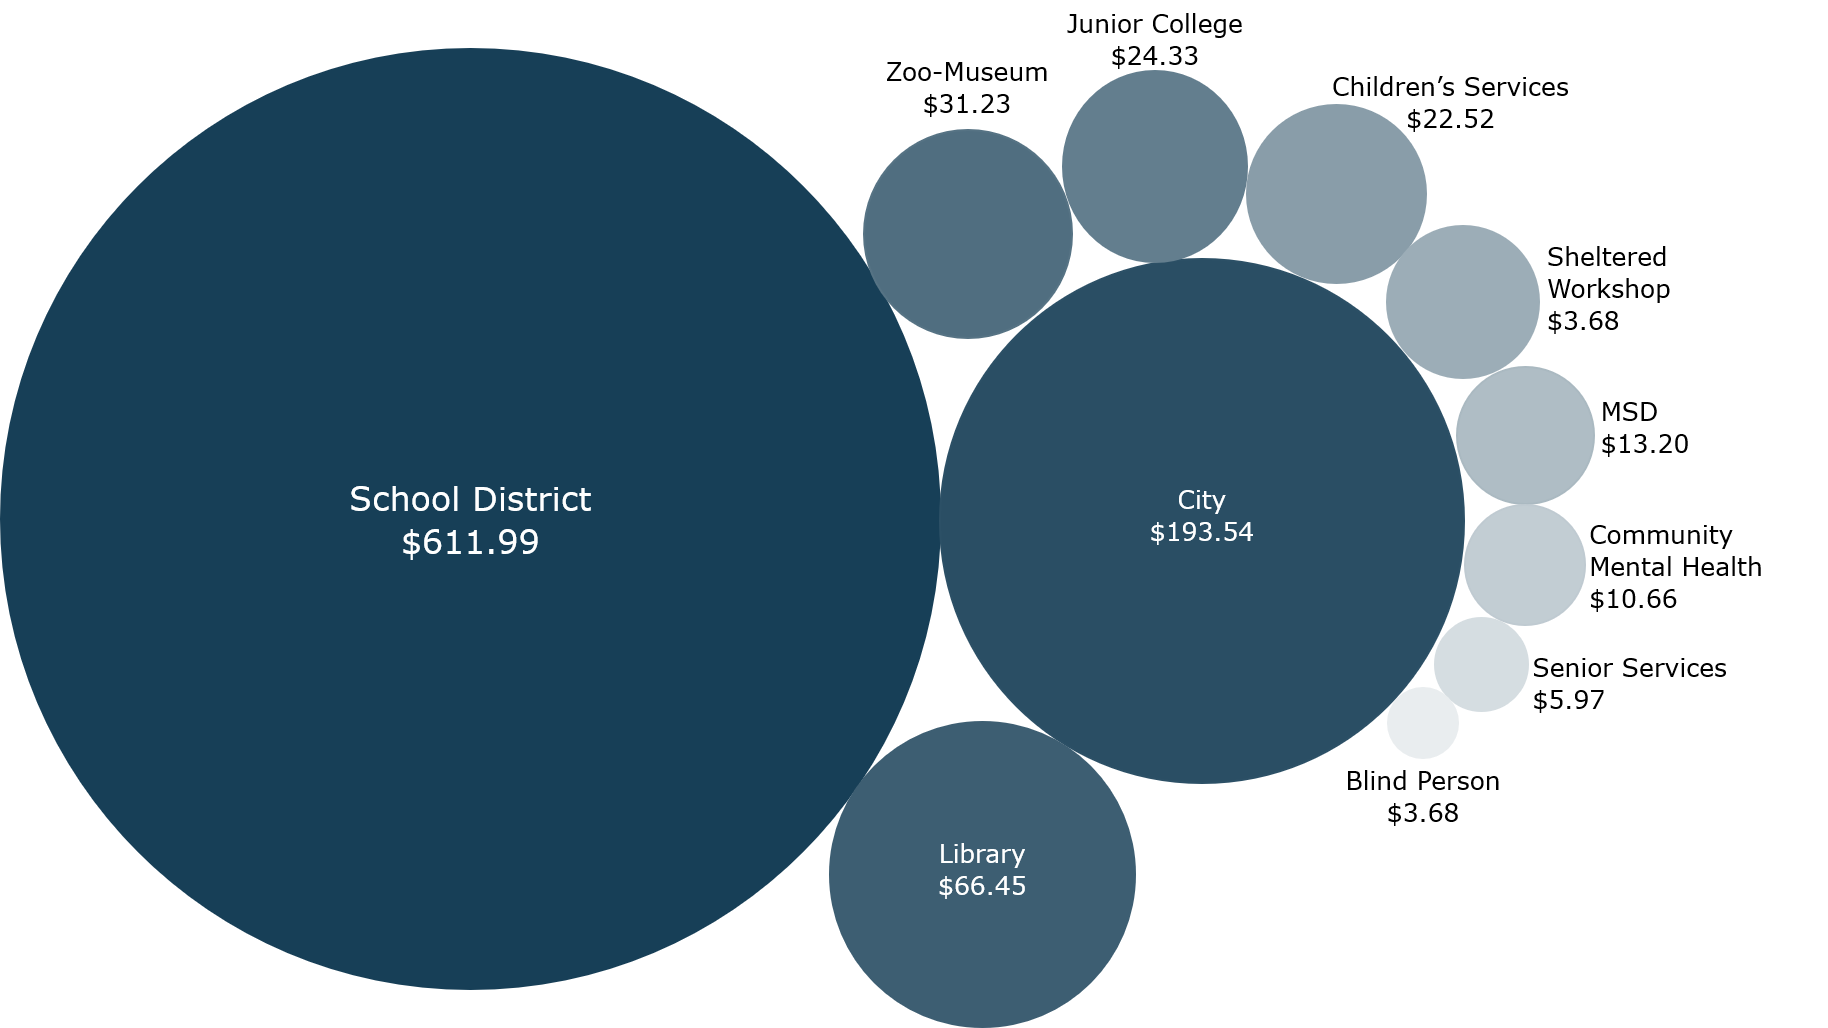 Shows the amount received per district for a $1000 tax bill